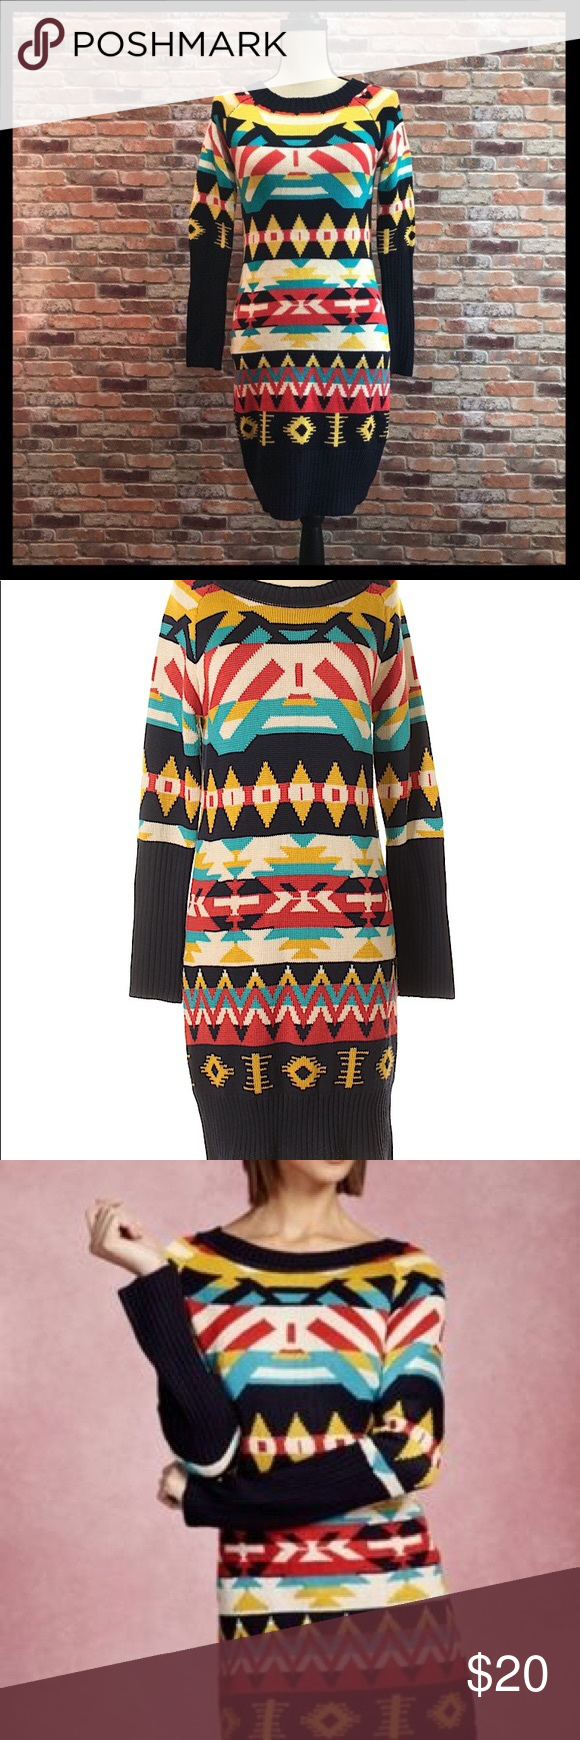 e1e26ad960 JessicaSimpson dark blue Aztec print sweater dress Jessica Simpson dark  blue Aztec print sweater dress.